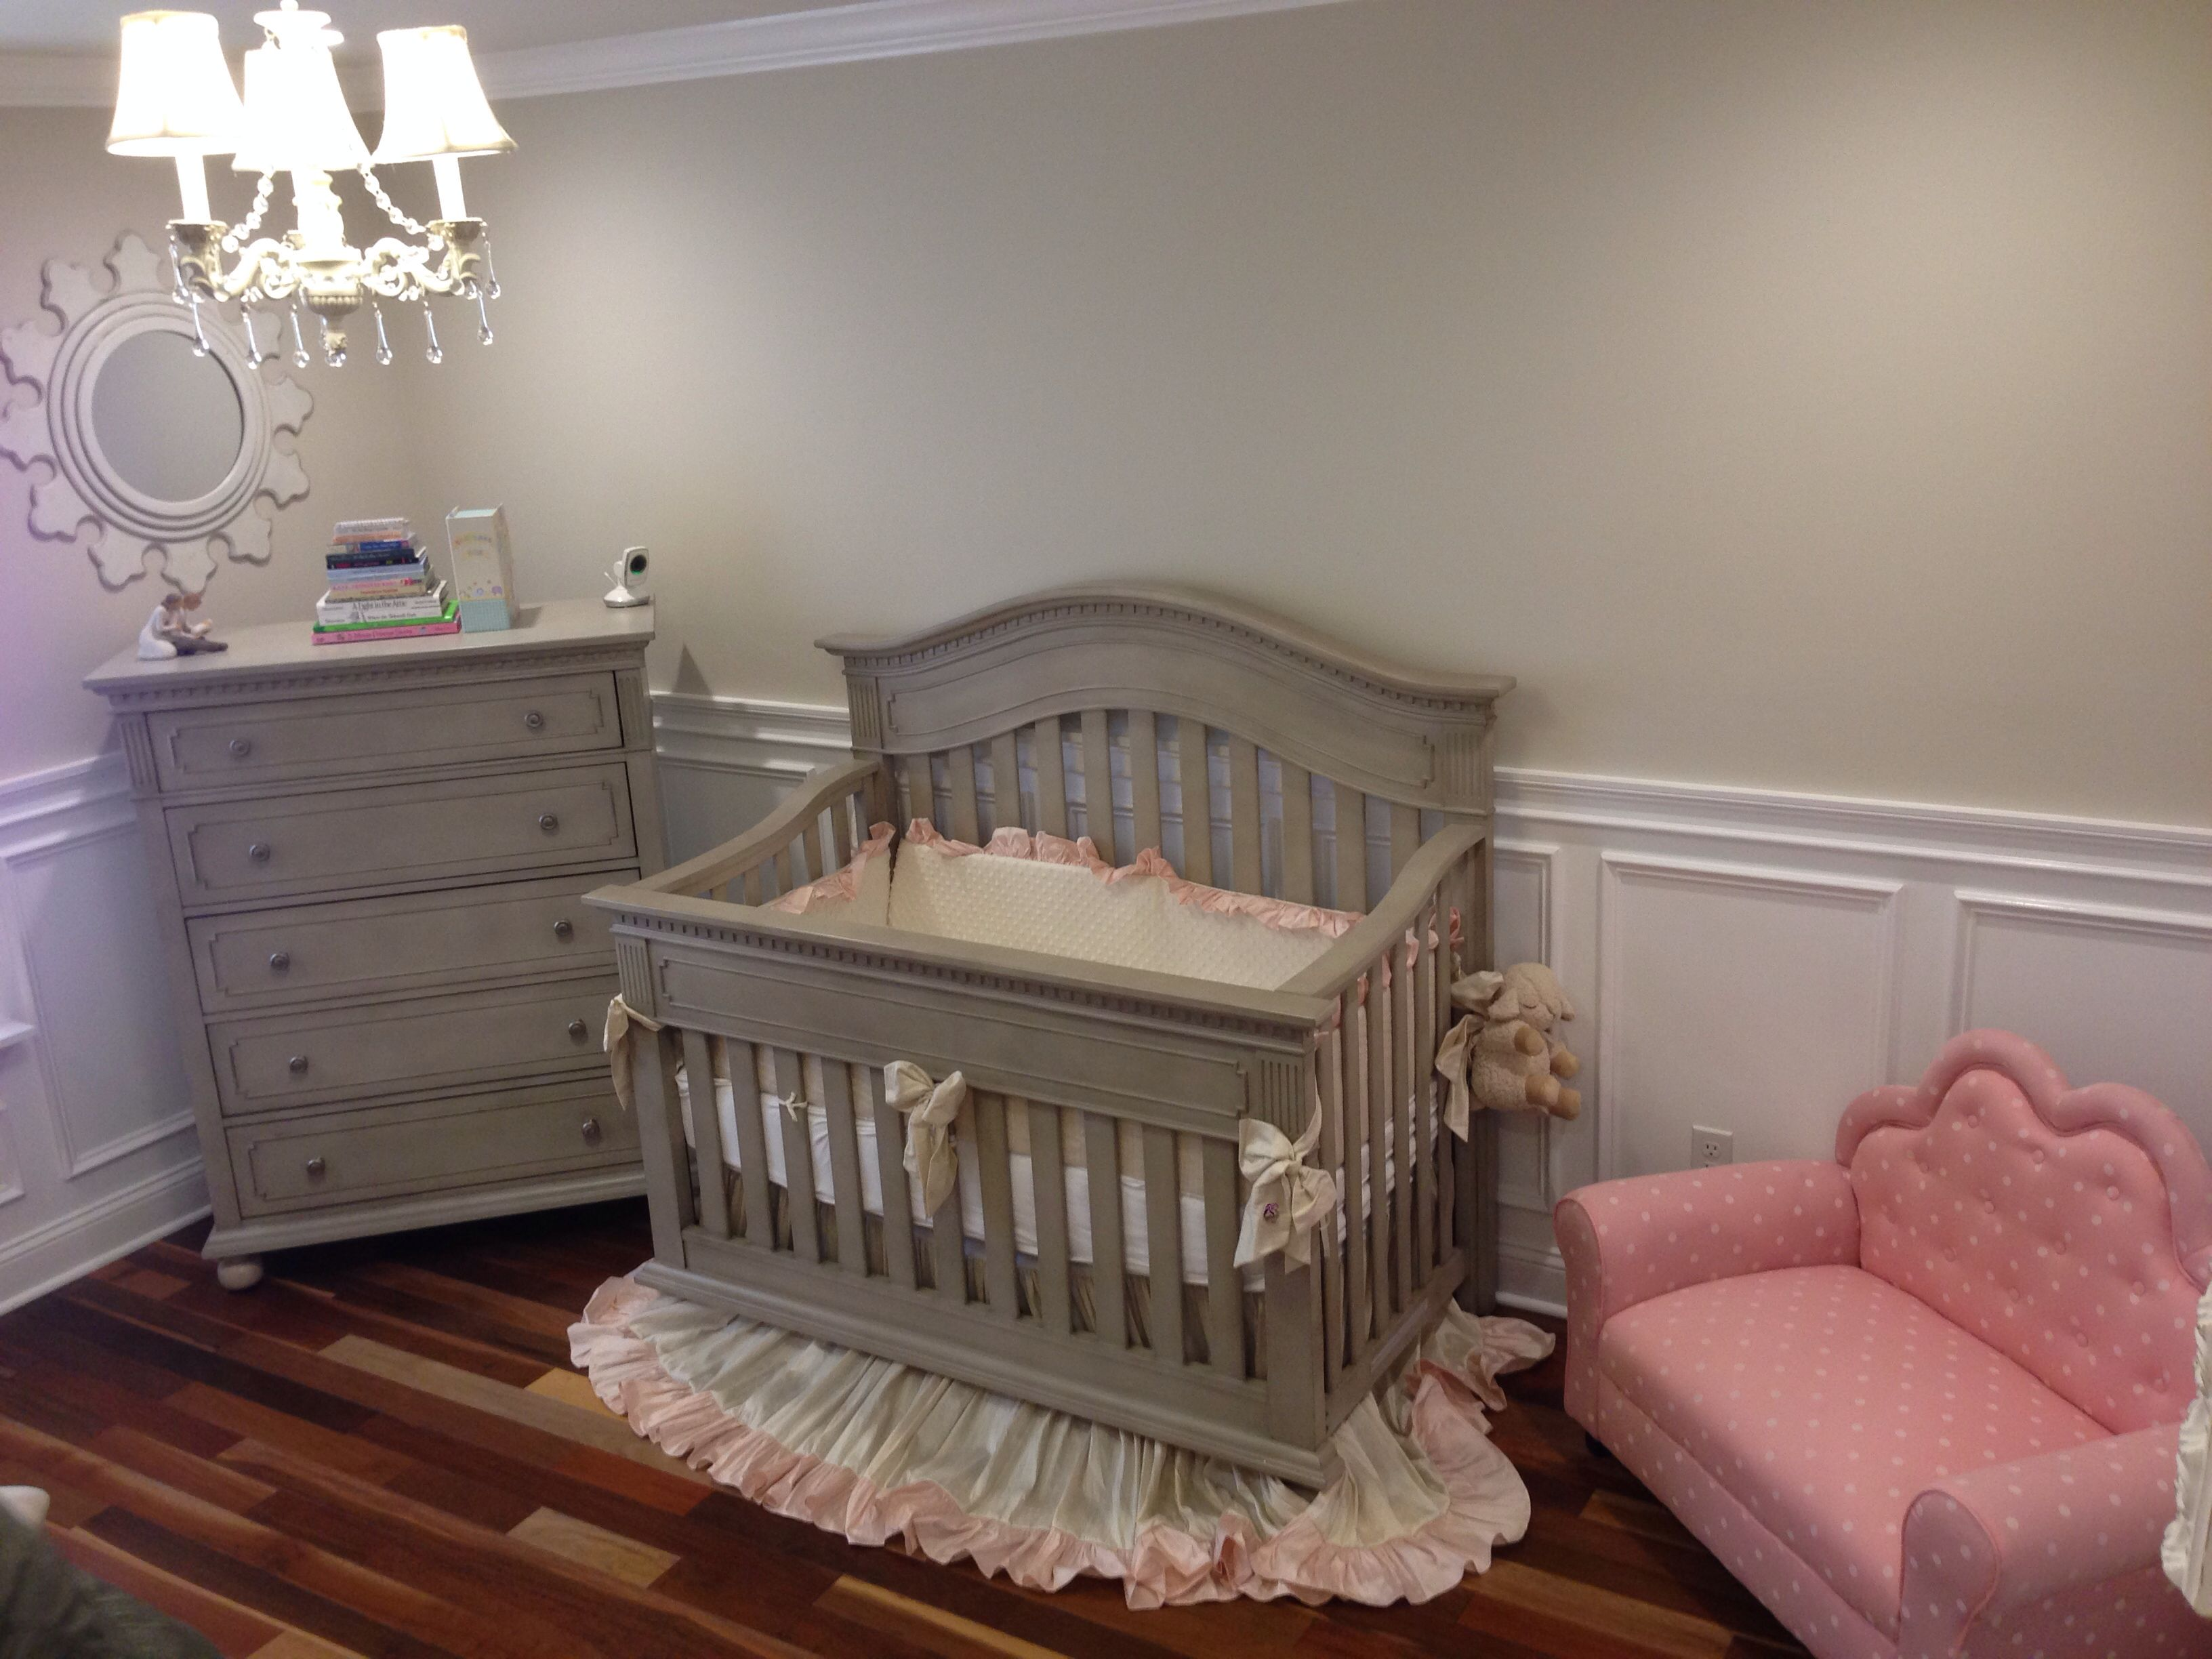 Elegant S Nursery Traditional Victorian With Wainscoting In A Baby